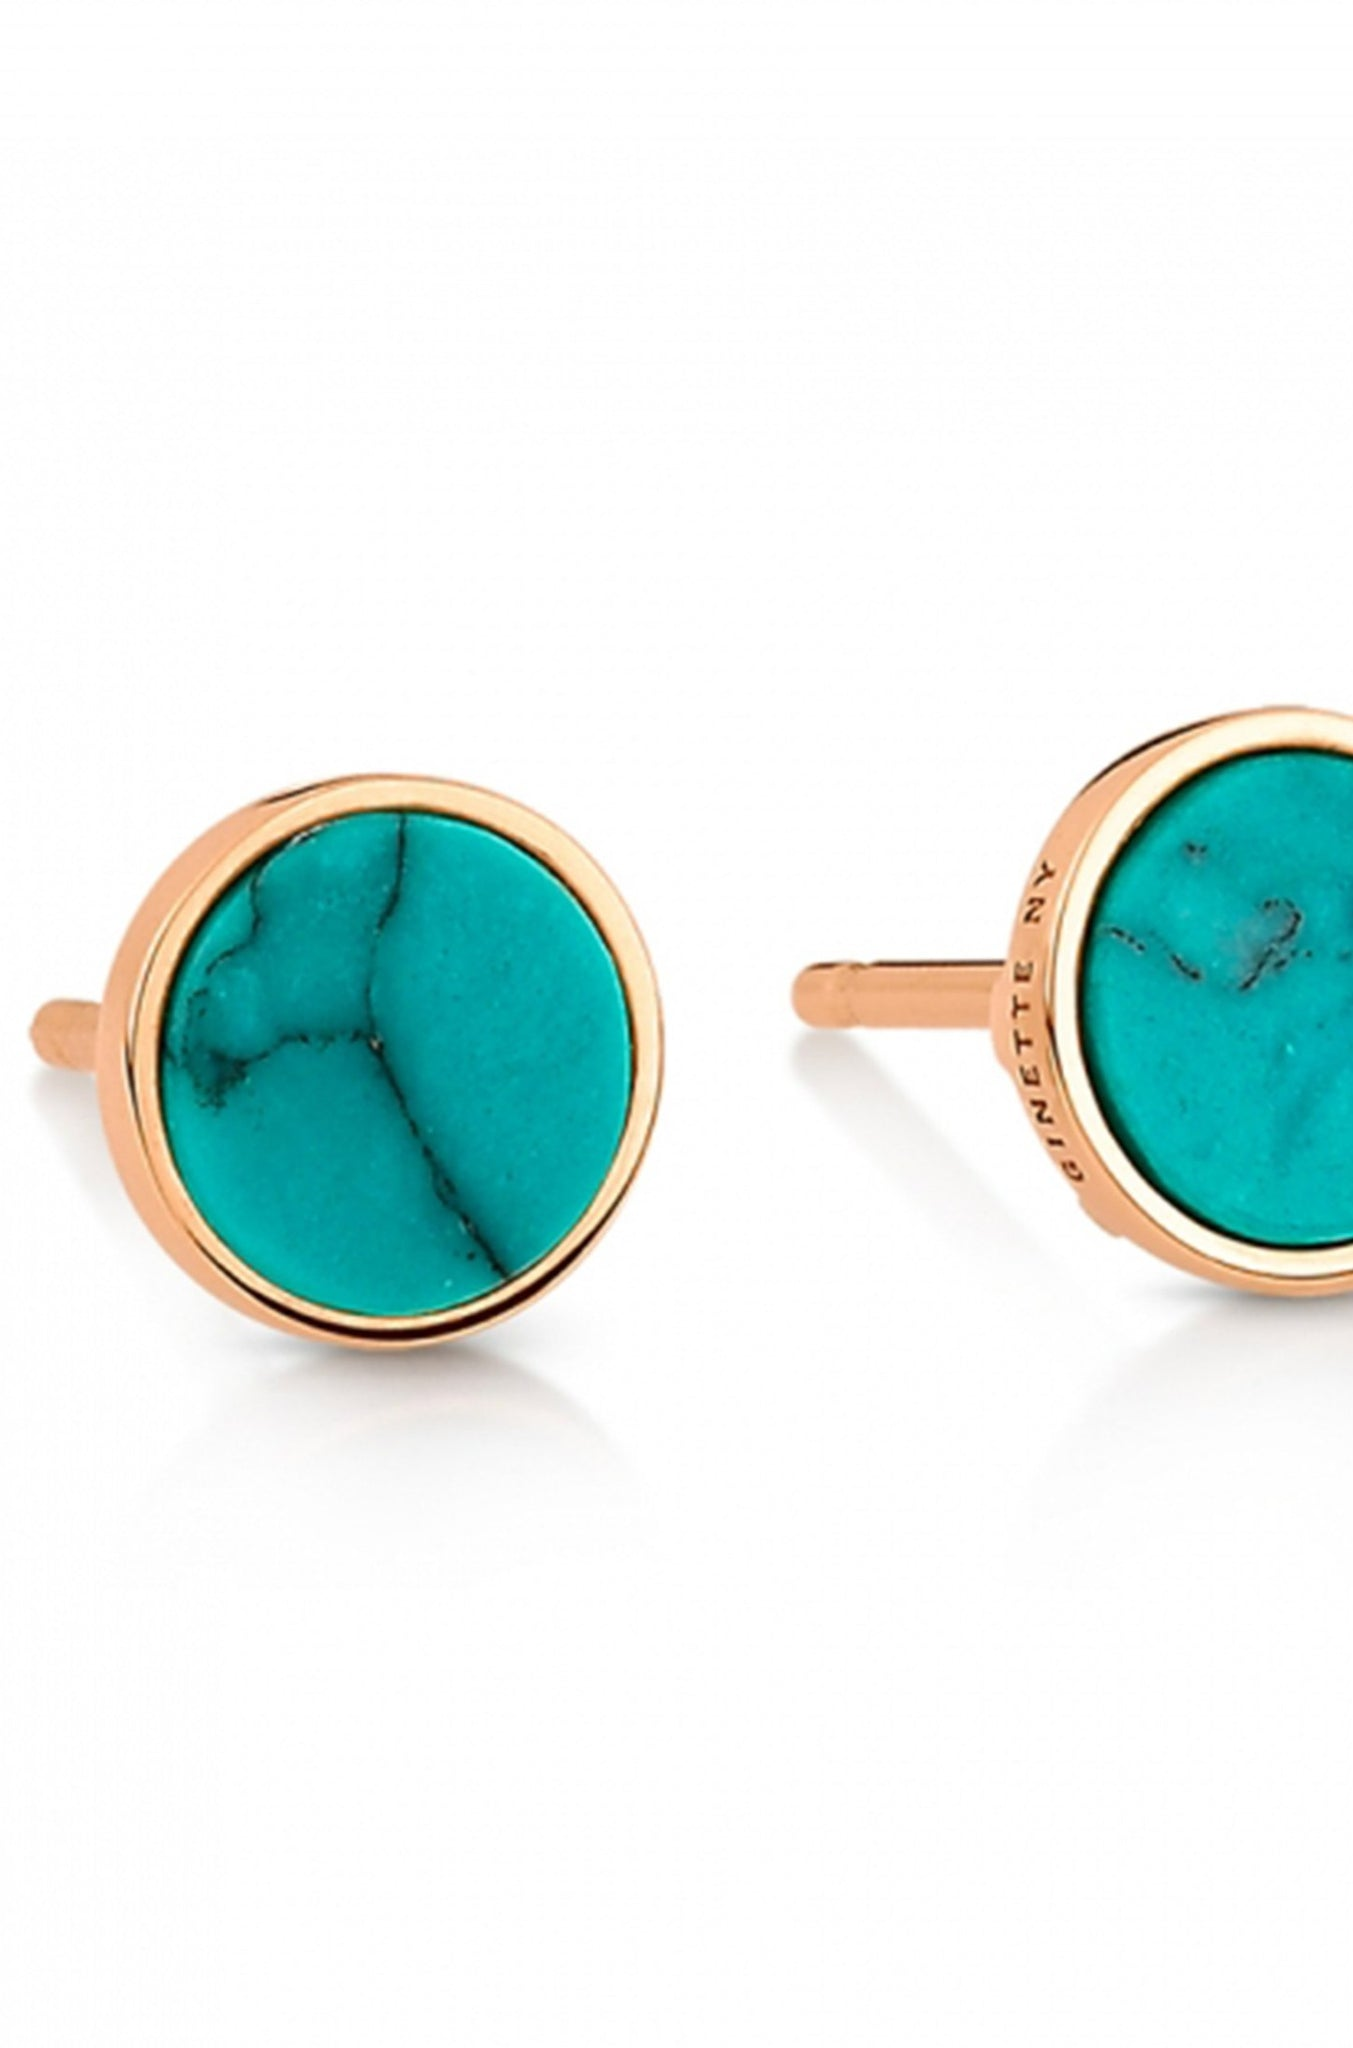 Ginette NY - ever turquoise disc studs, rose gold